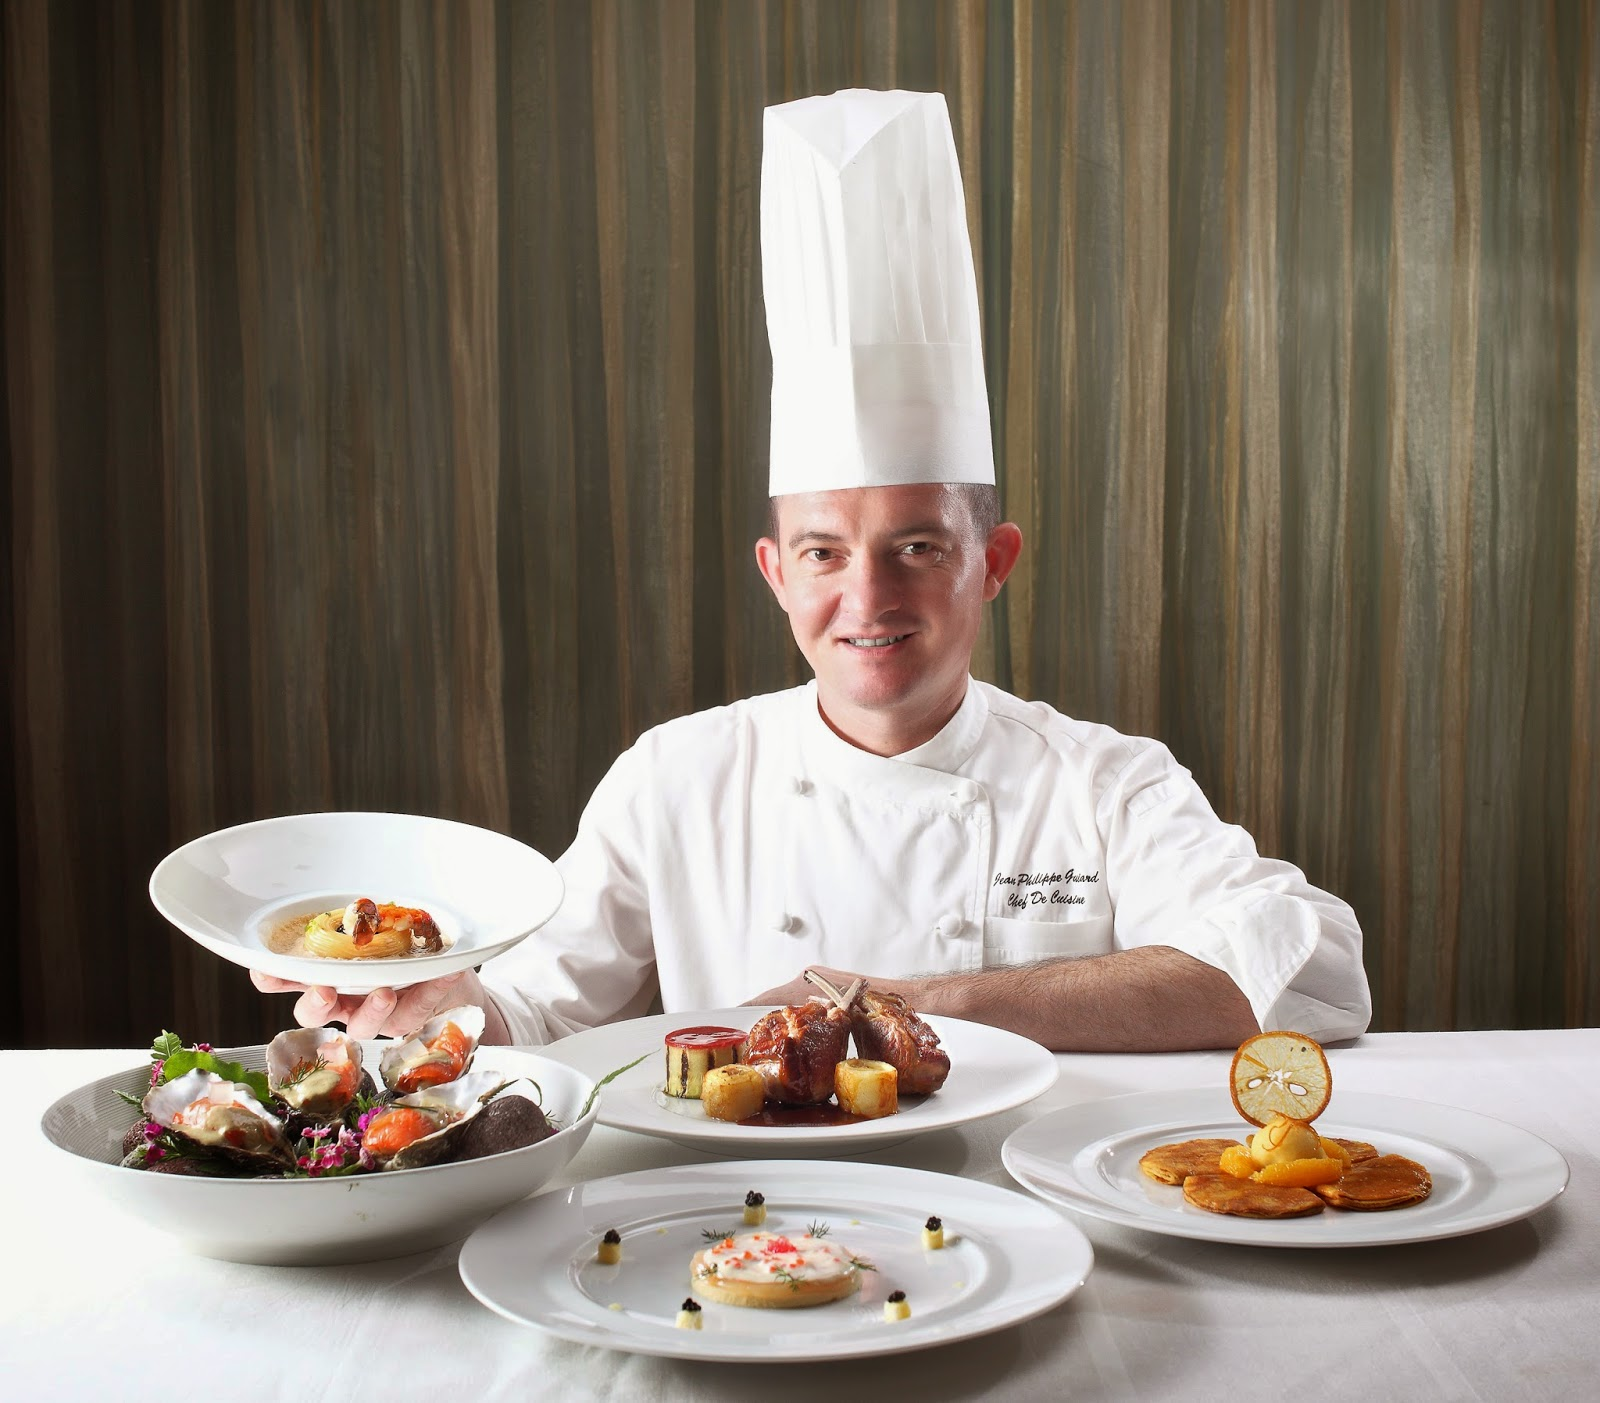 Kee Hua Chee Live!: SHANGRI-LA KUALA LUMPUR PRESENTS GOURMET DINNER WITH WINE PAIRING ON 24